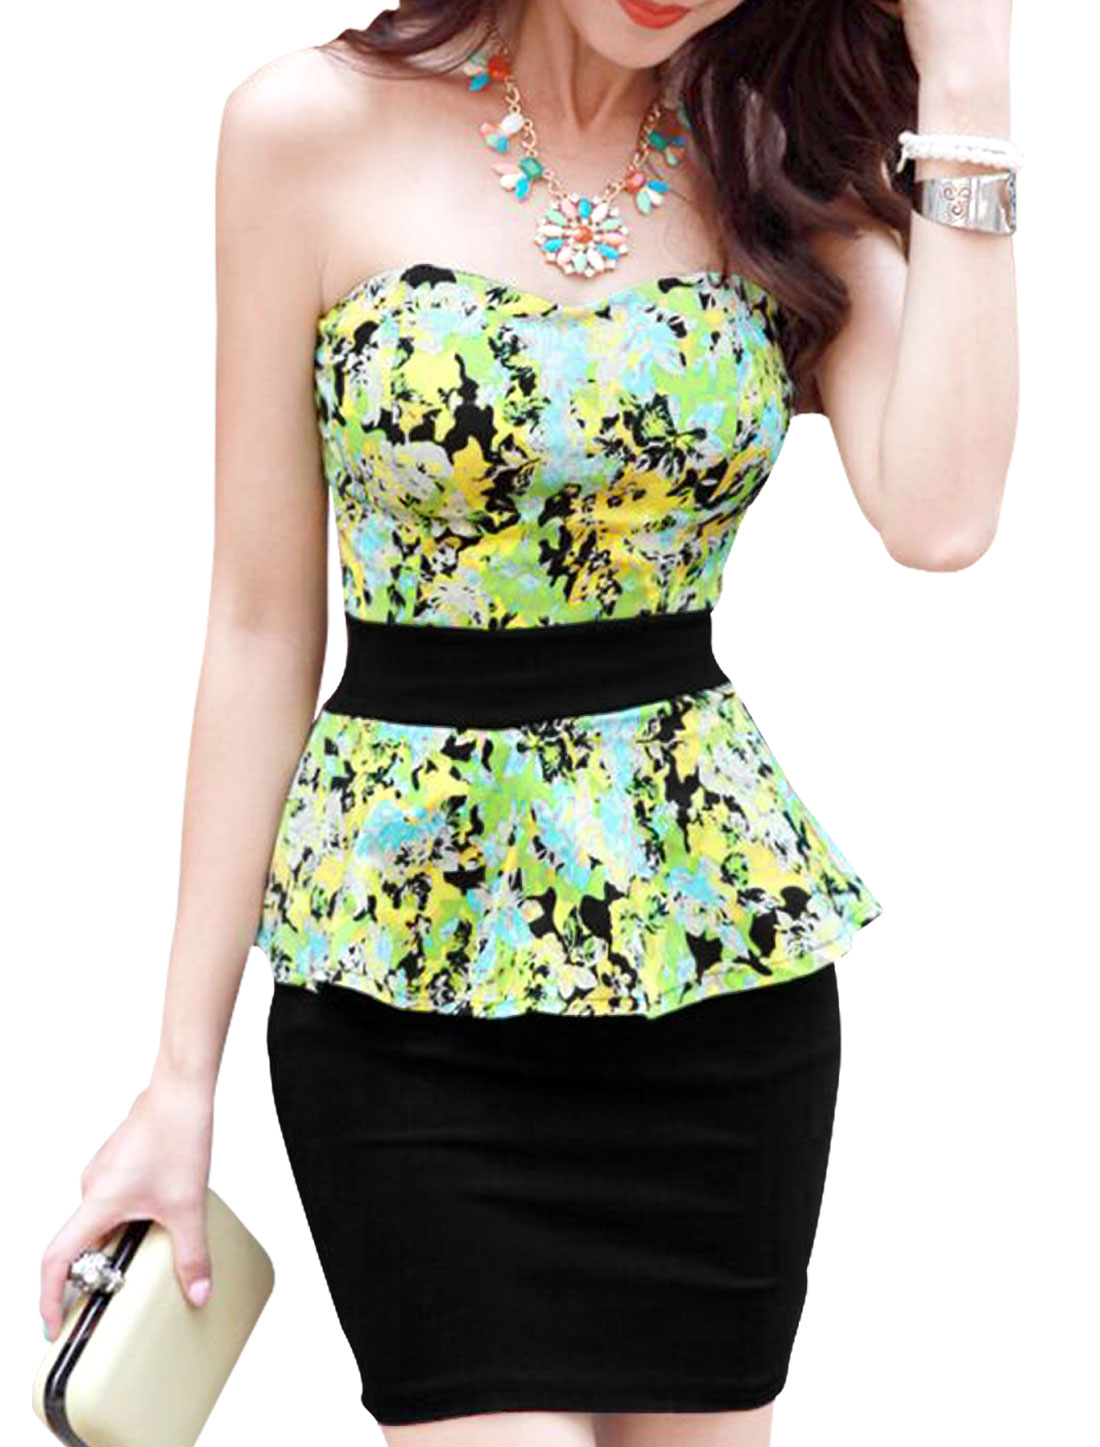 Lady Strapless Floral Prints Cut Out Back Sexy Peplum Dress Black Yellow XS